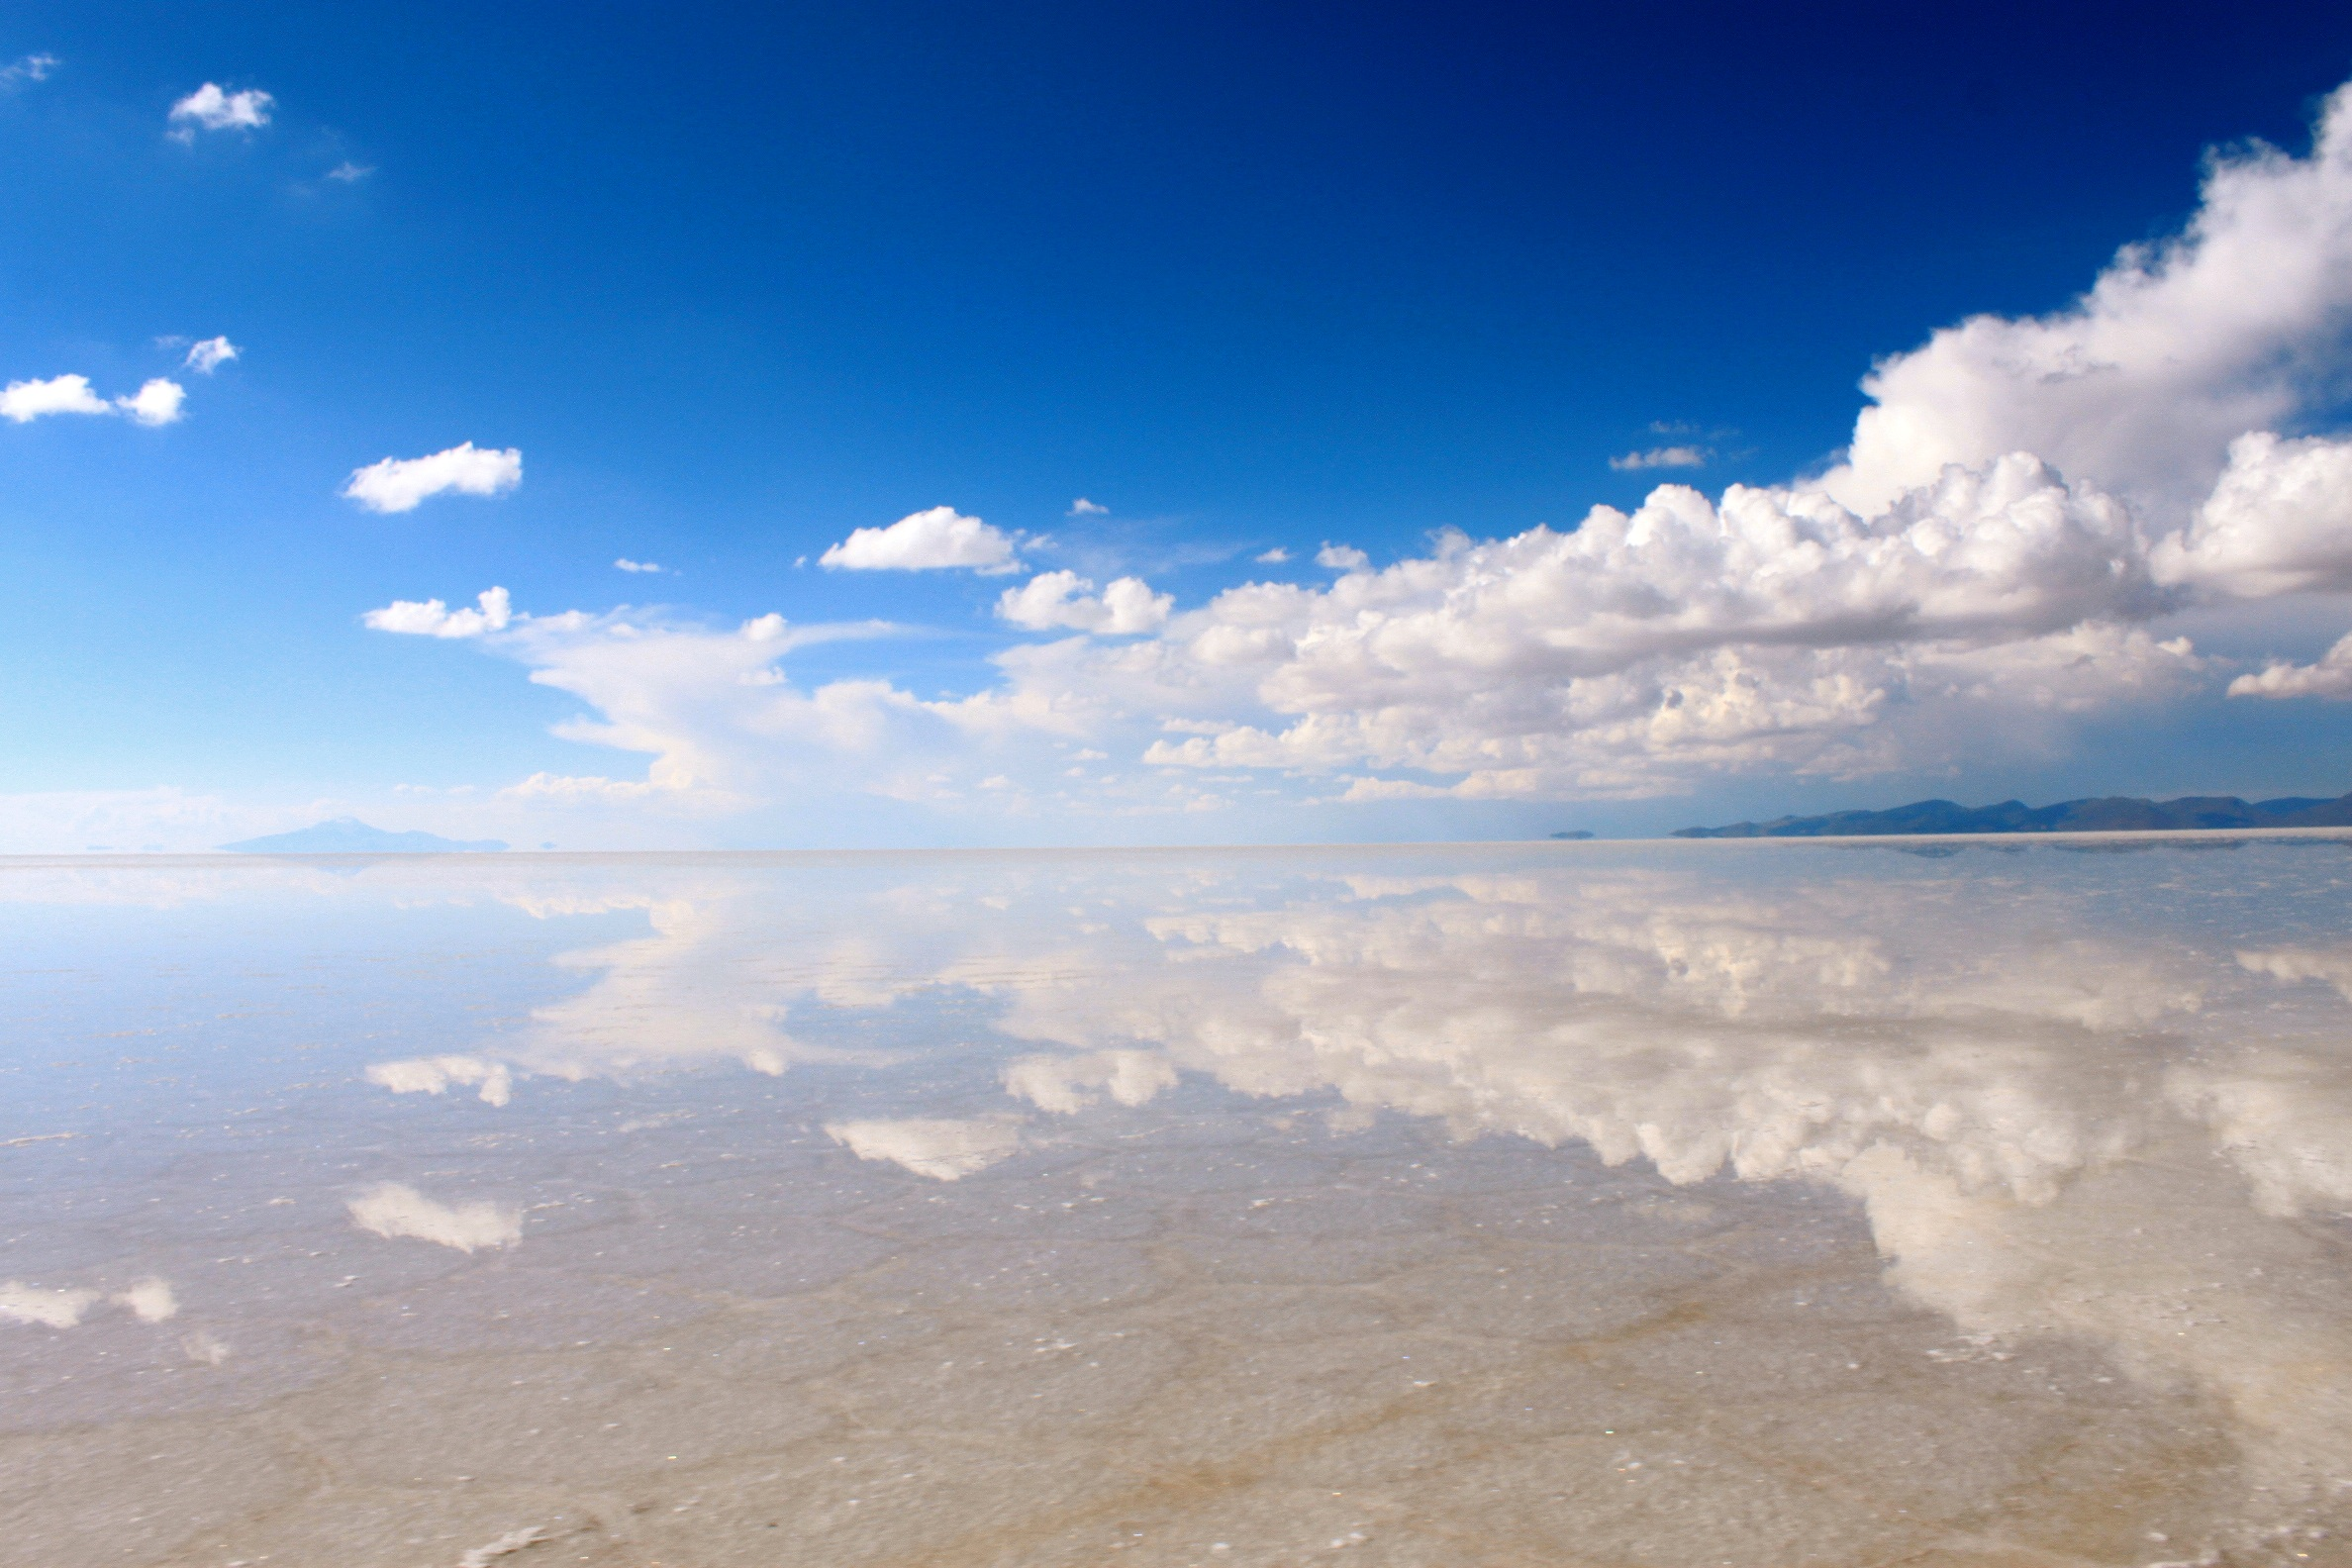 wallpapers 1600x1200 salar de uyuni bolivia   Wallpaper Aholic 2376x1584